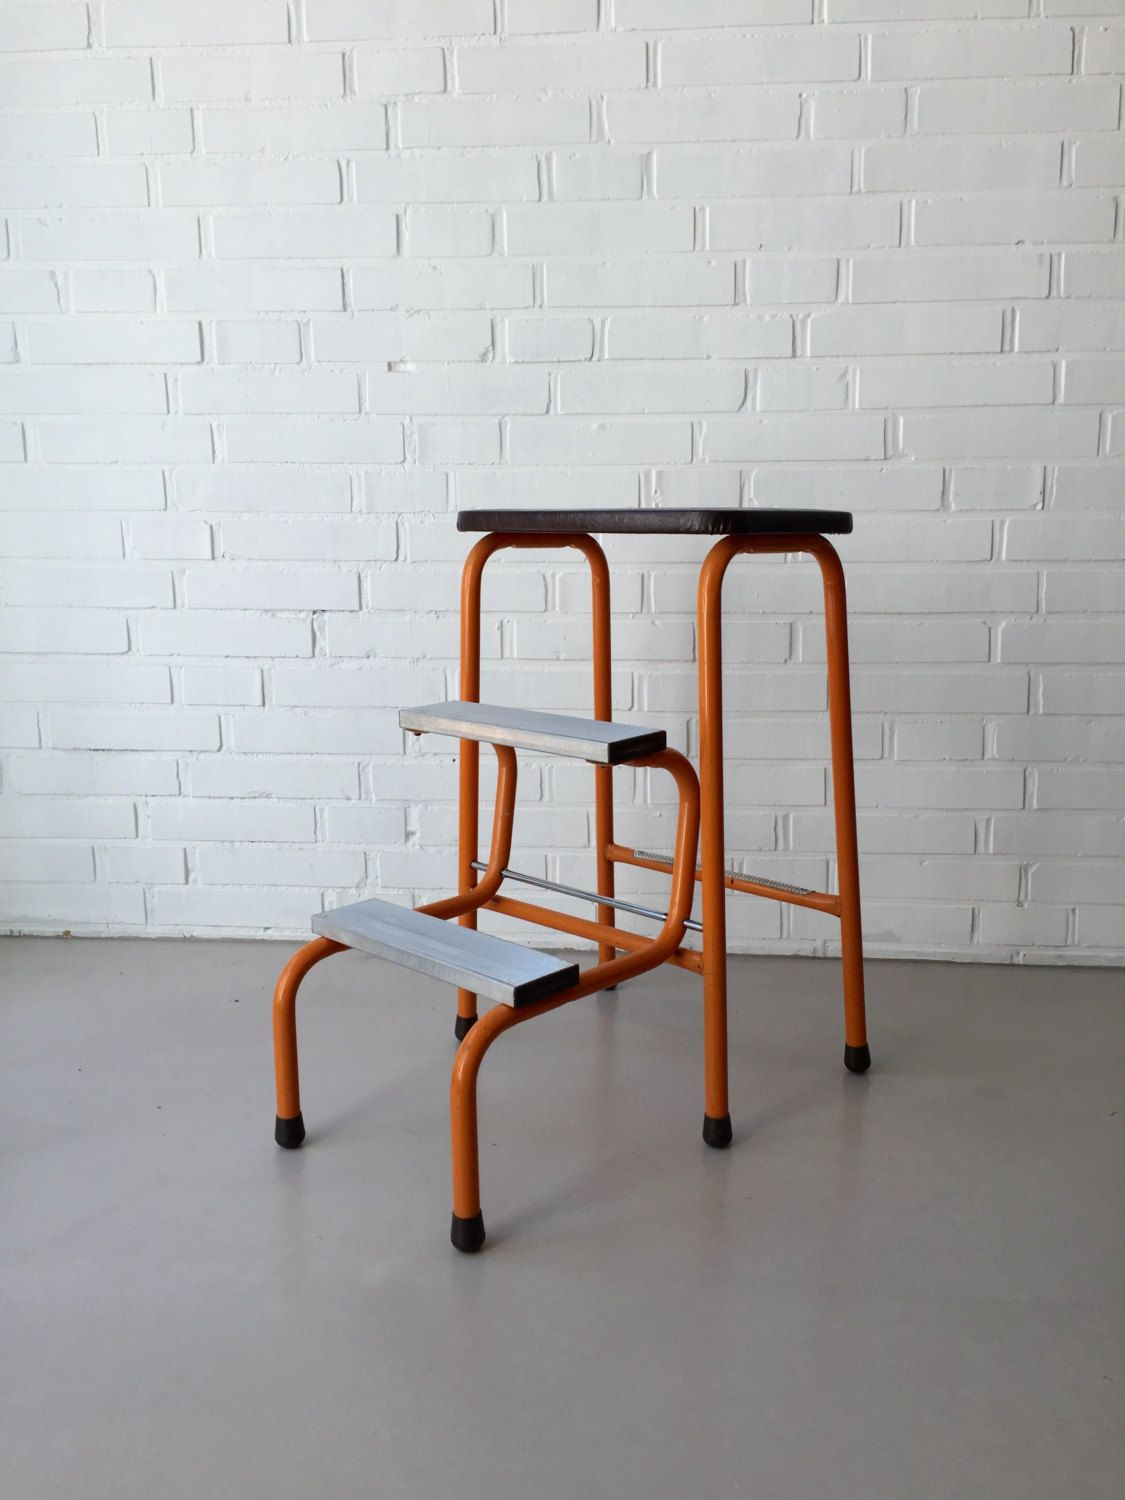 Tritthocker Holz Klappbar Vintage Step Ladder Step Stool 50s 60s Folding Bauhaus